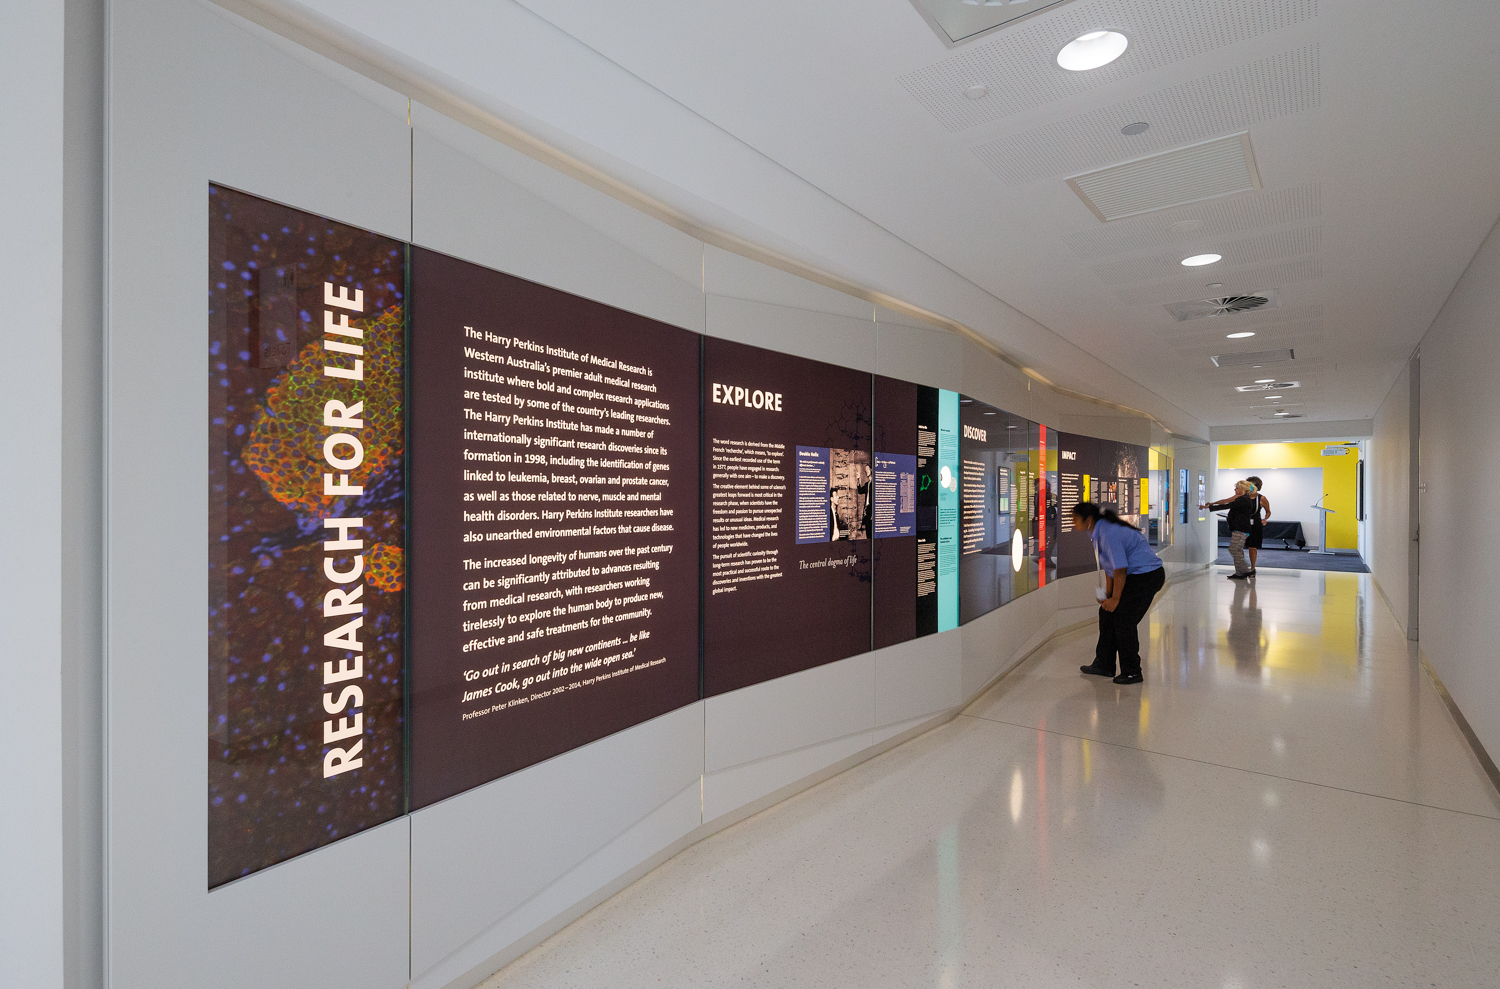 Interpretive display, with detailed stories regarding the diversity of research at the Institute as well as various collaborations with the international community.